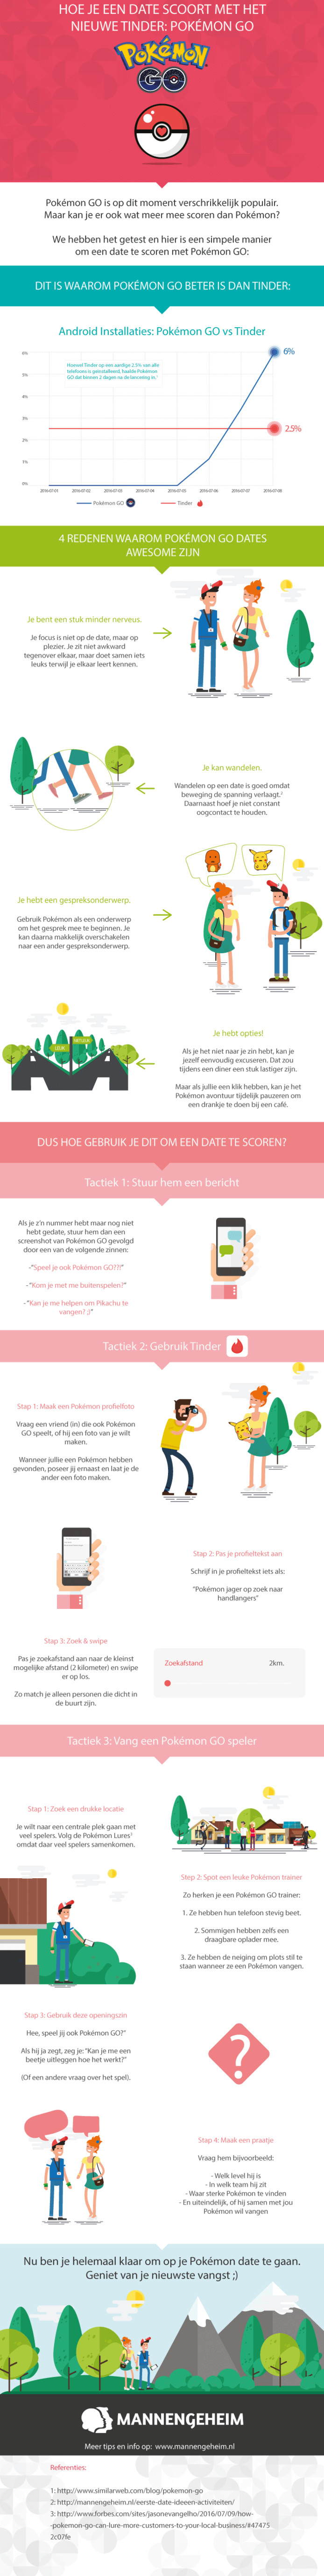 De infographic die de datingcoaches maakten